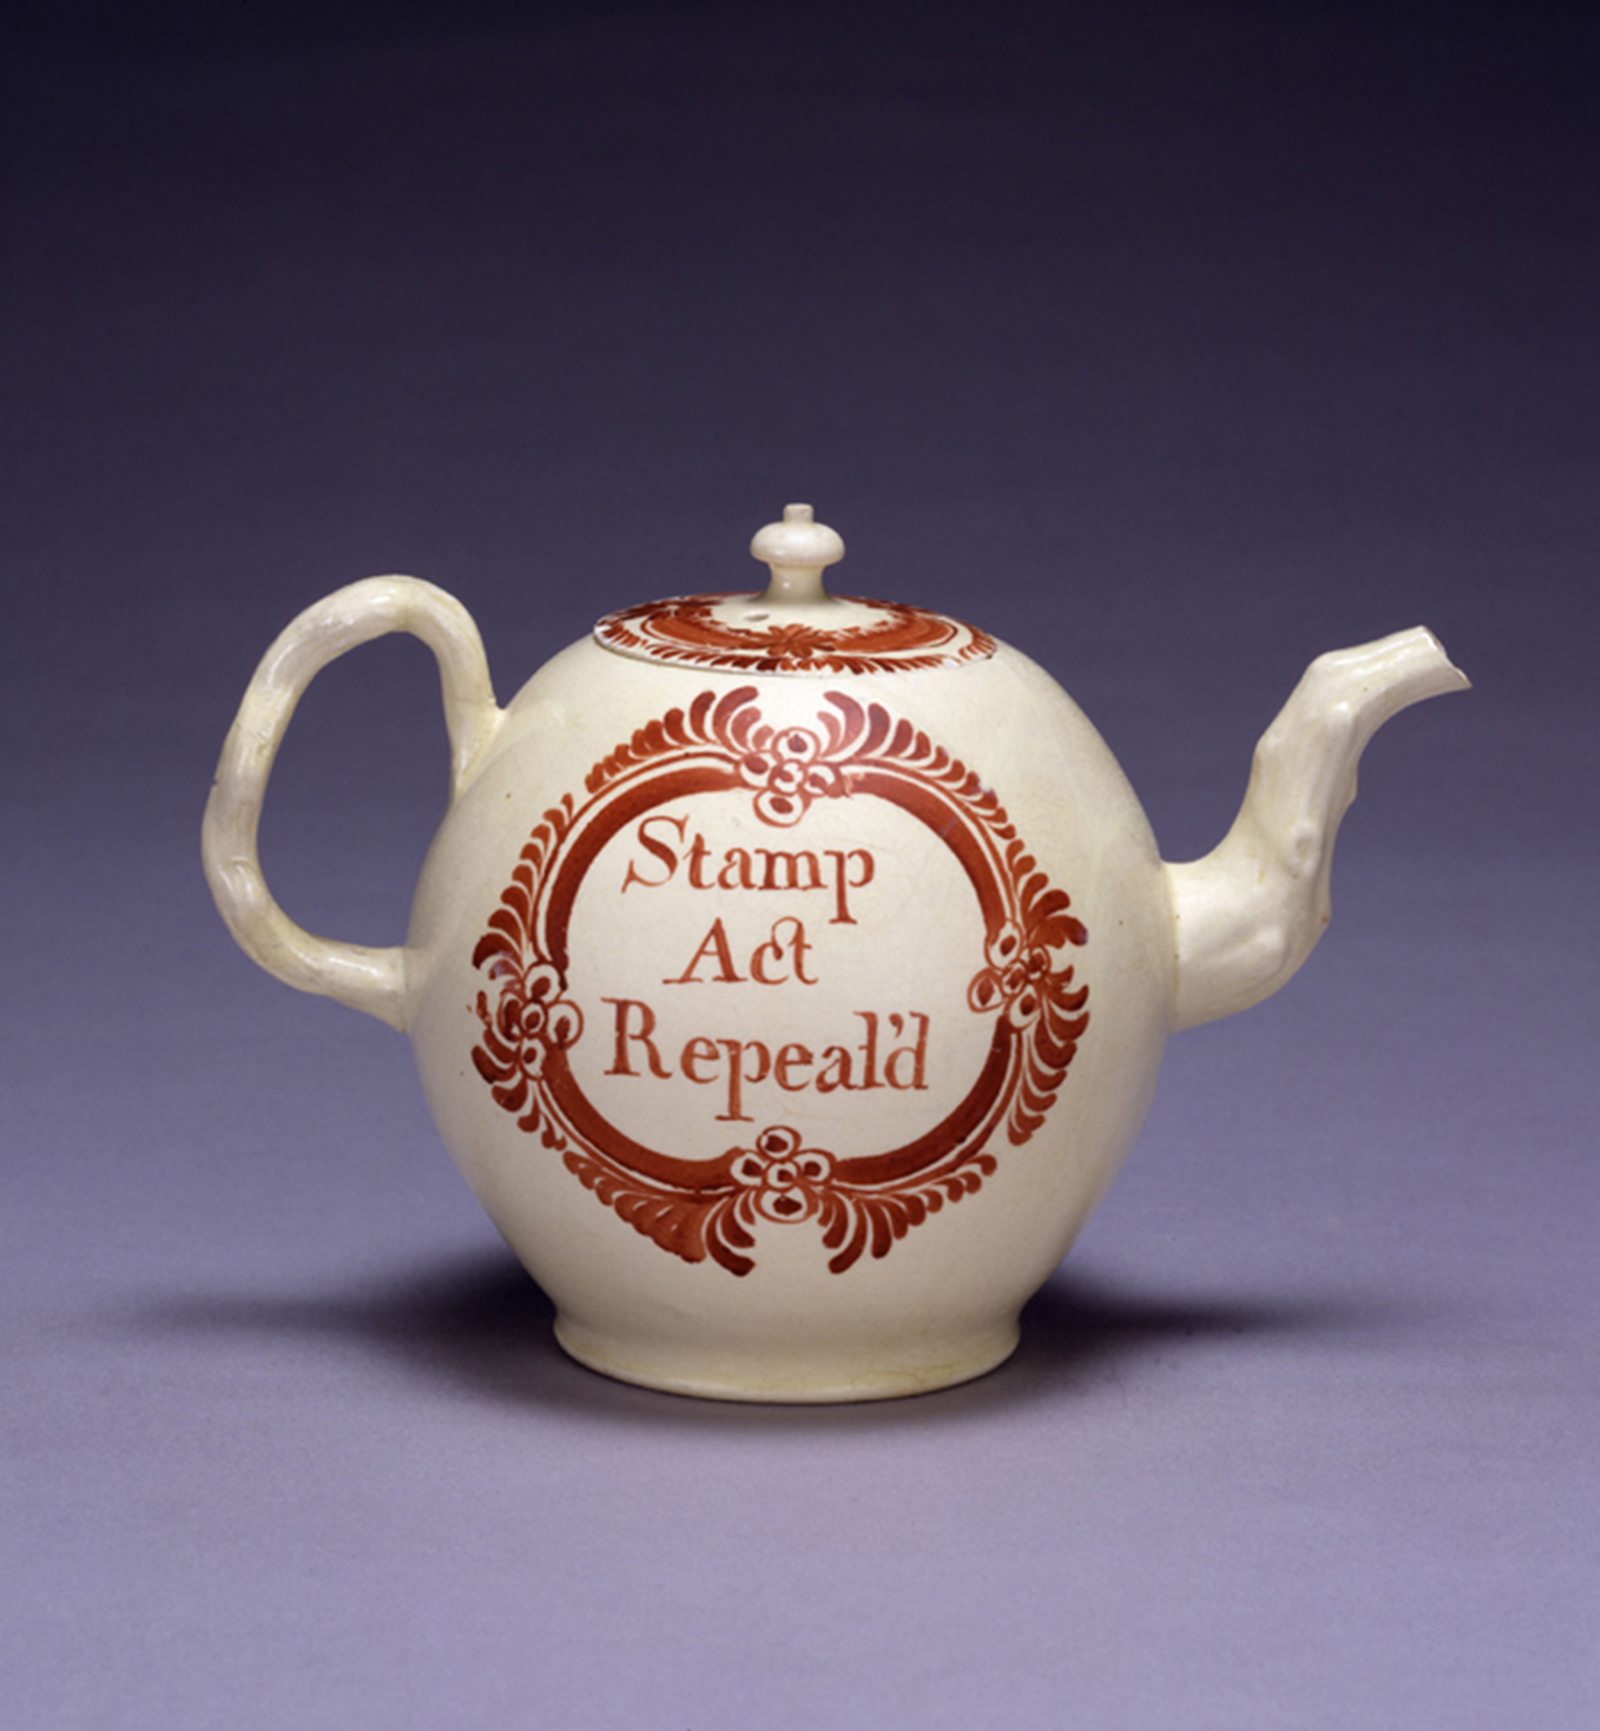 the american revolution  the american yawp men and women politicized the domestic sphere by buying and displaying  items that conspicuously revealed their